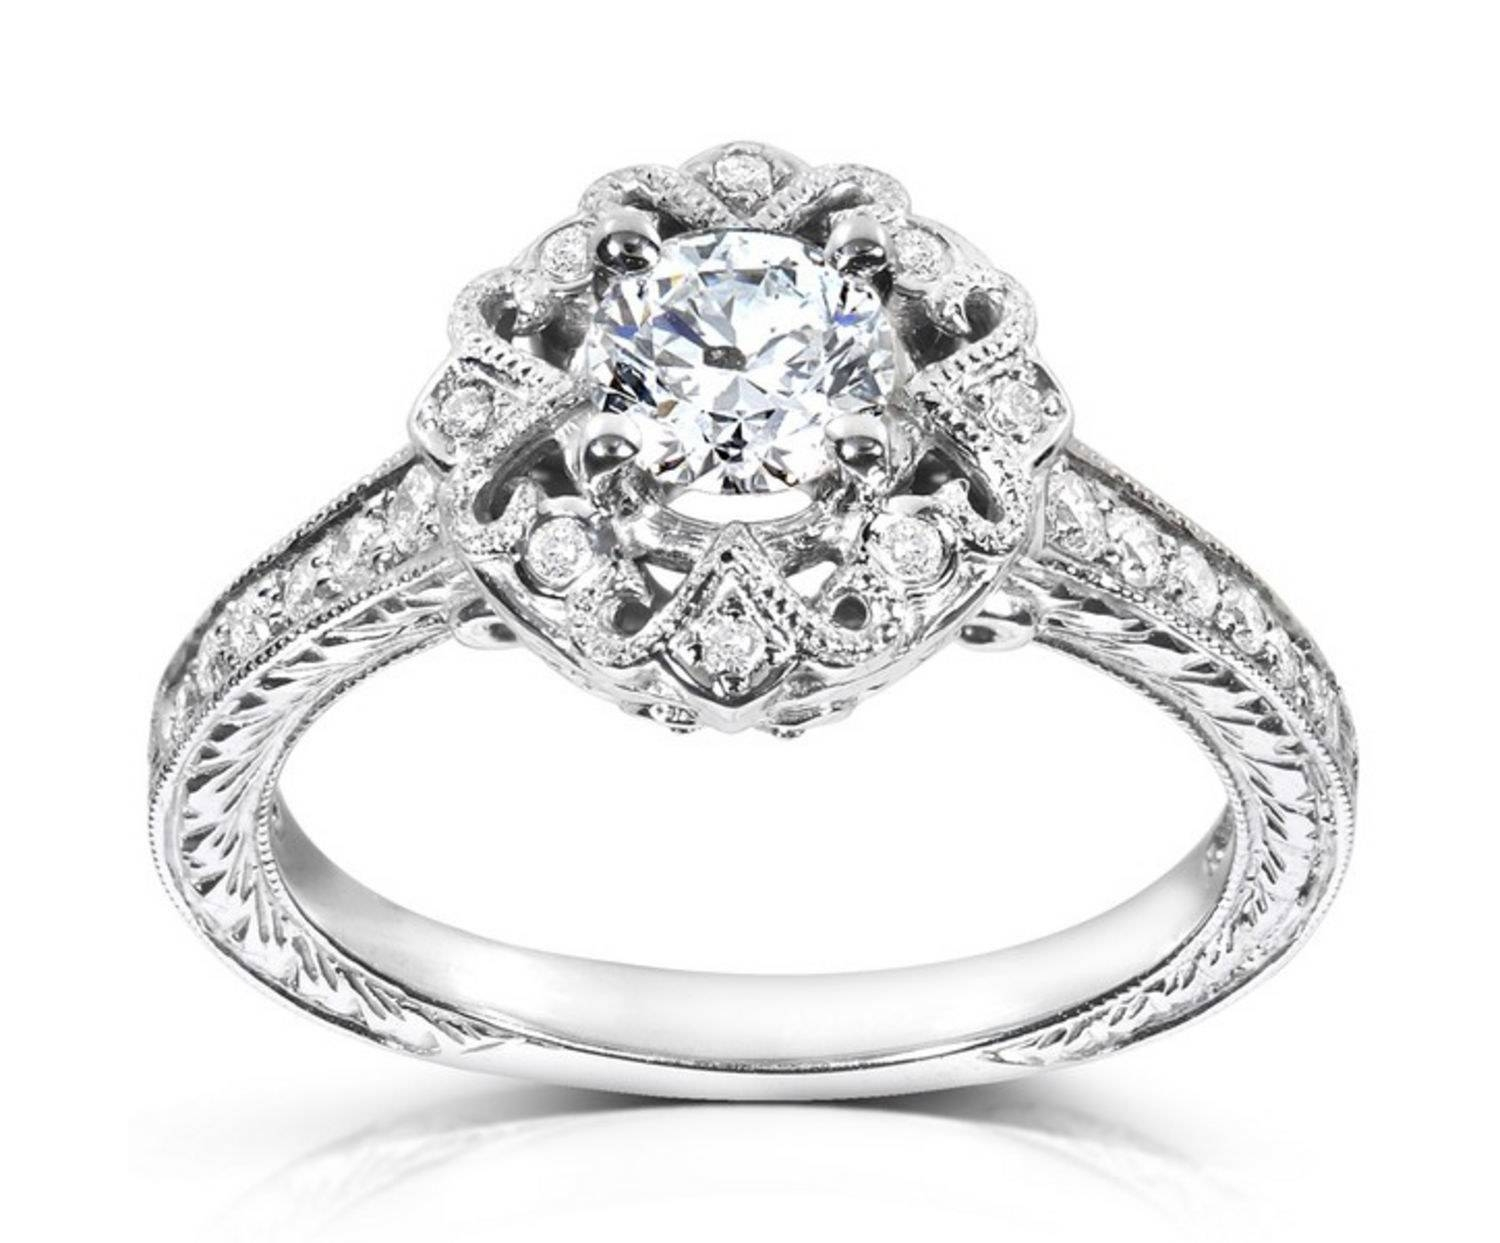 Affordable Engagement Rings Under $1,000 | Glamour With Chicago Diamond Engagement Rings (View 3 of 15)